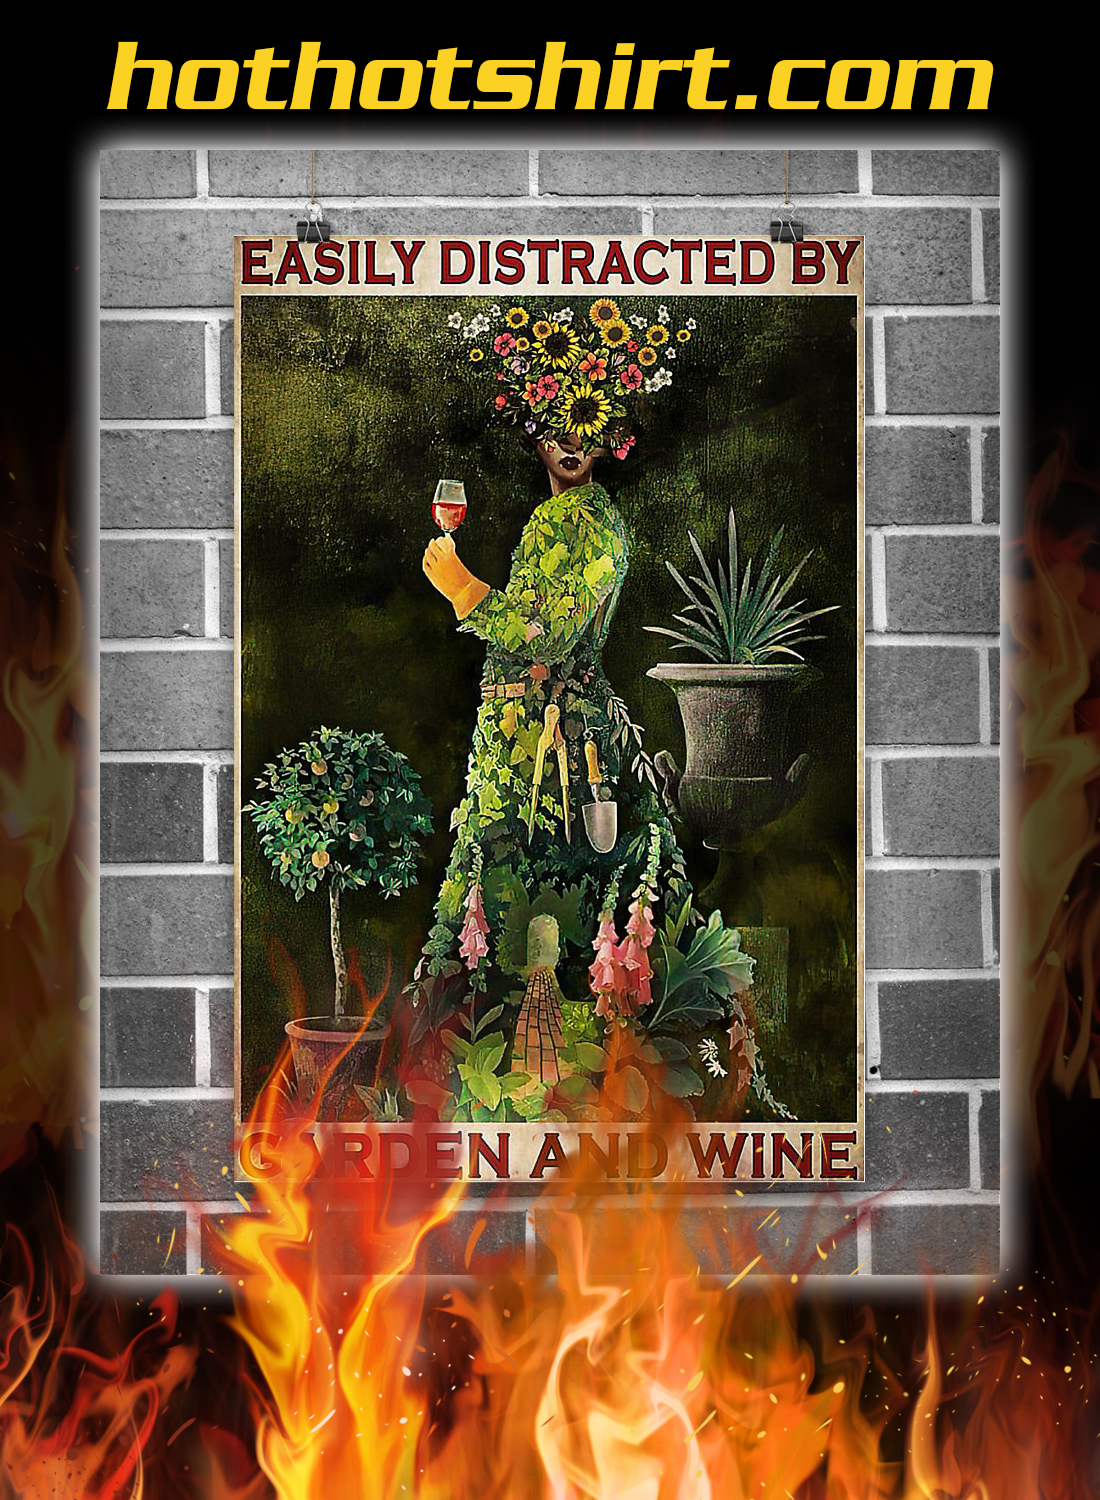 Woman Easily distracted by garden and wine poster 1